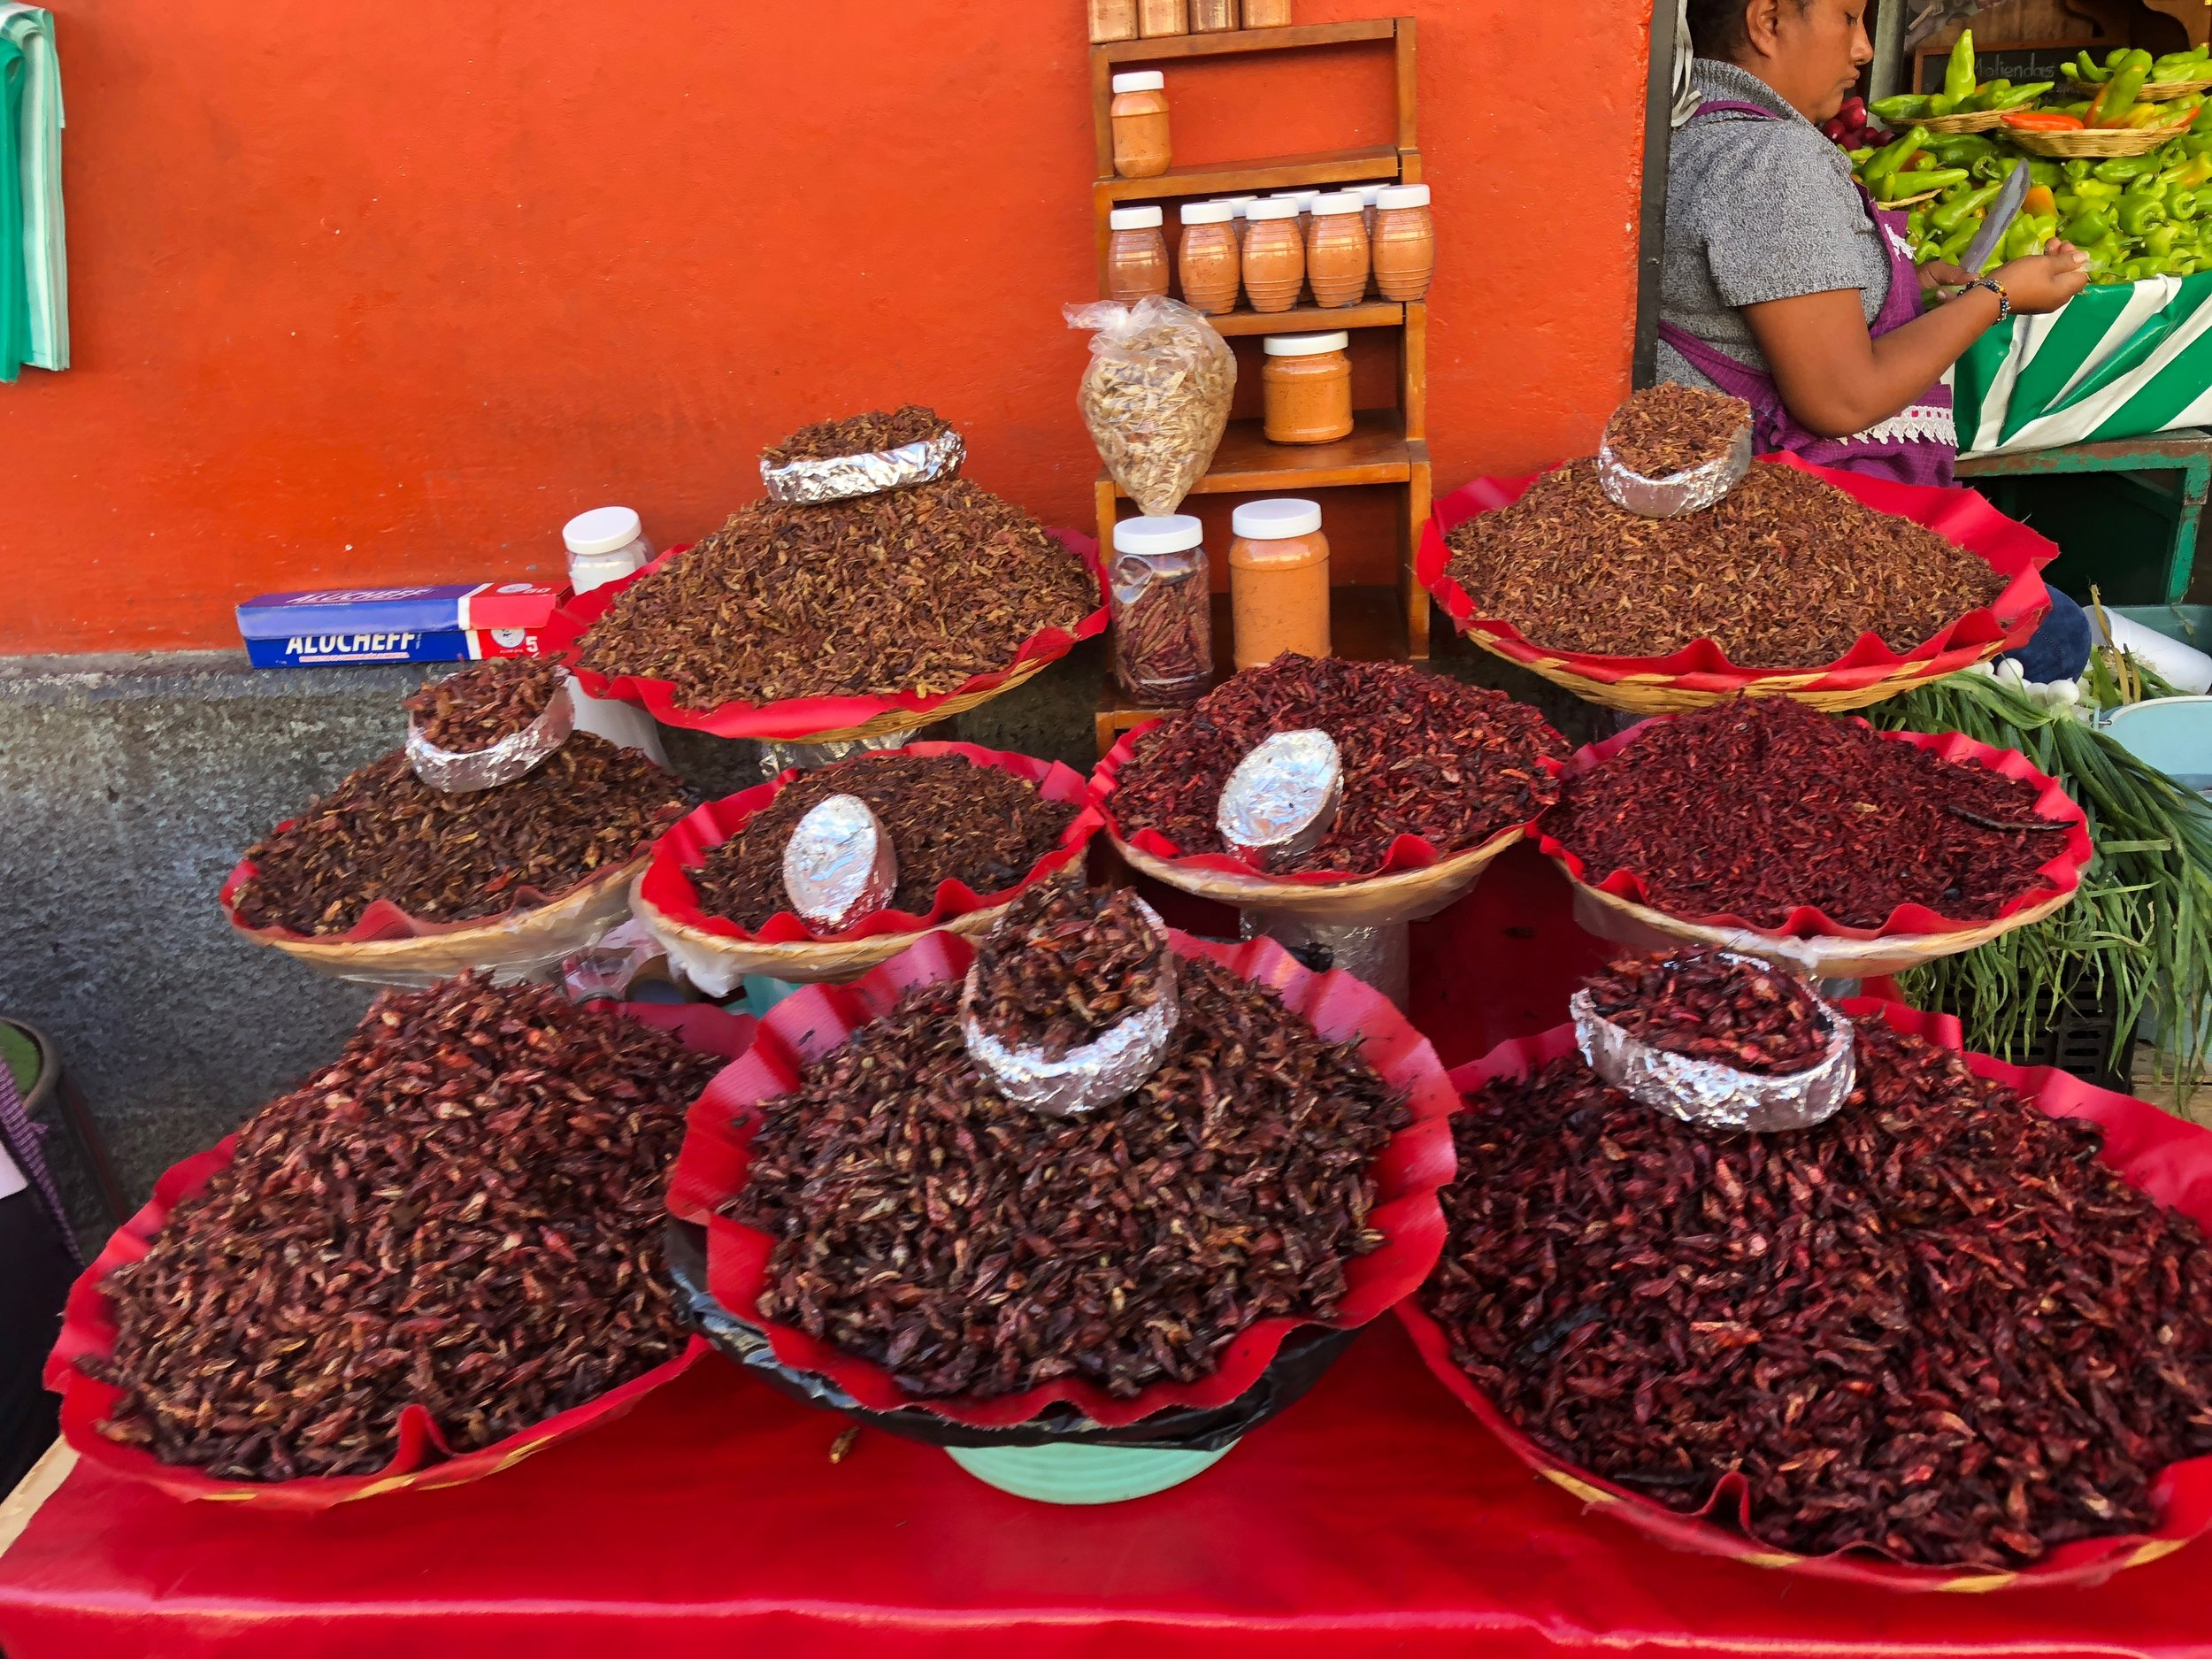 """An array of """"chapulines"""" (grasshoppers) for sale in varying sizes to munch on!"""